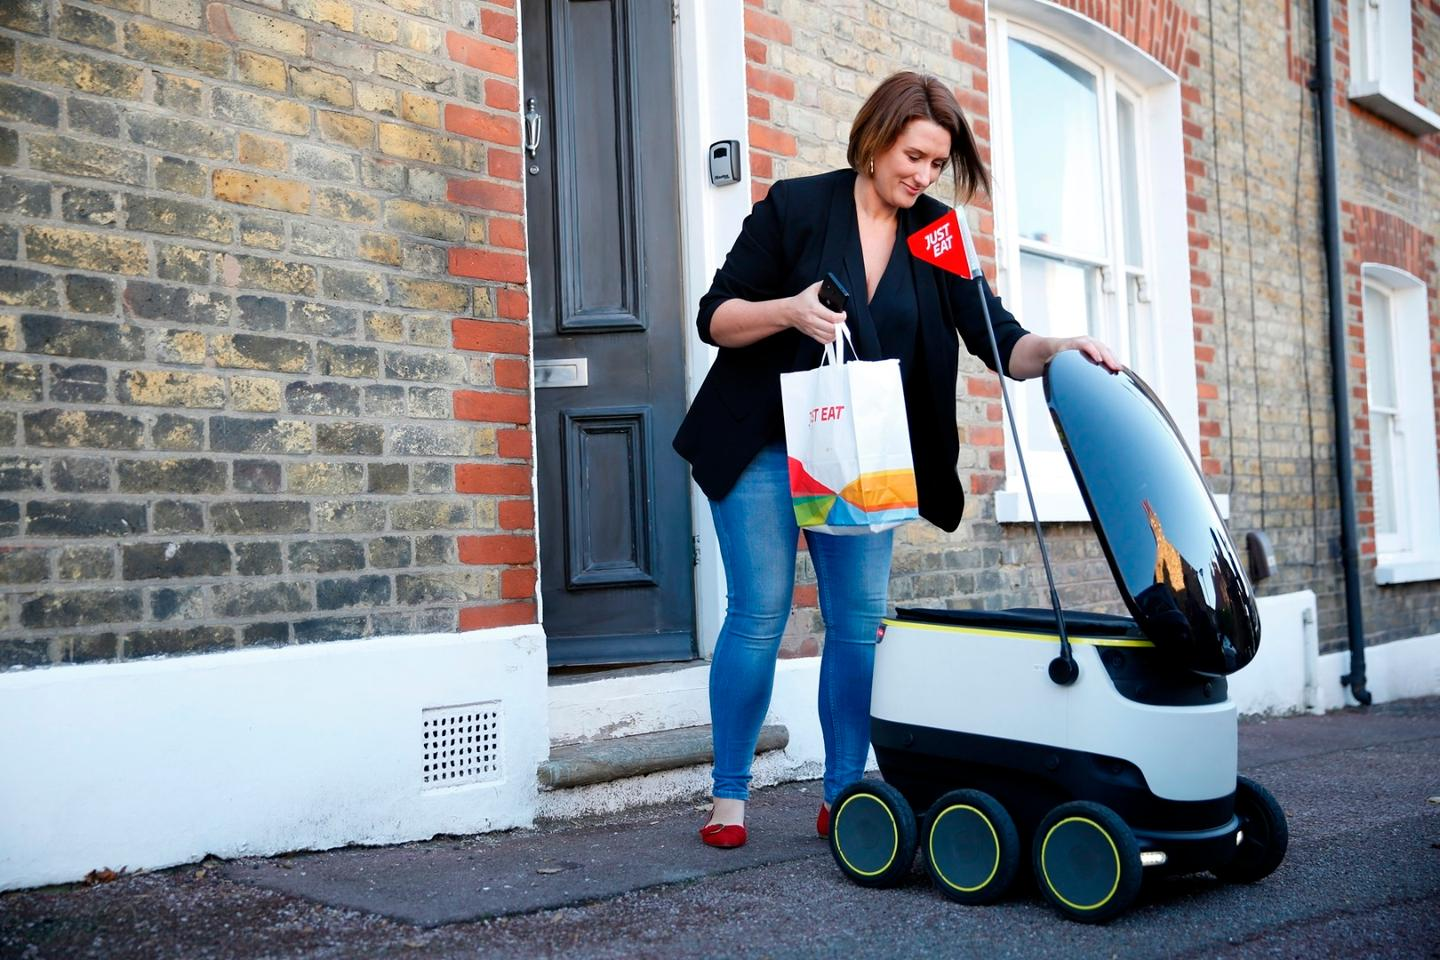 The Just Eat customer who received the robot-delivered order was sent  a unique link for accessing the cargo hold on her phone